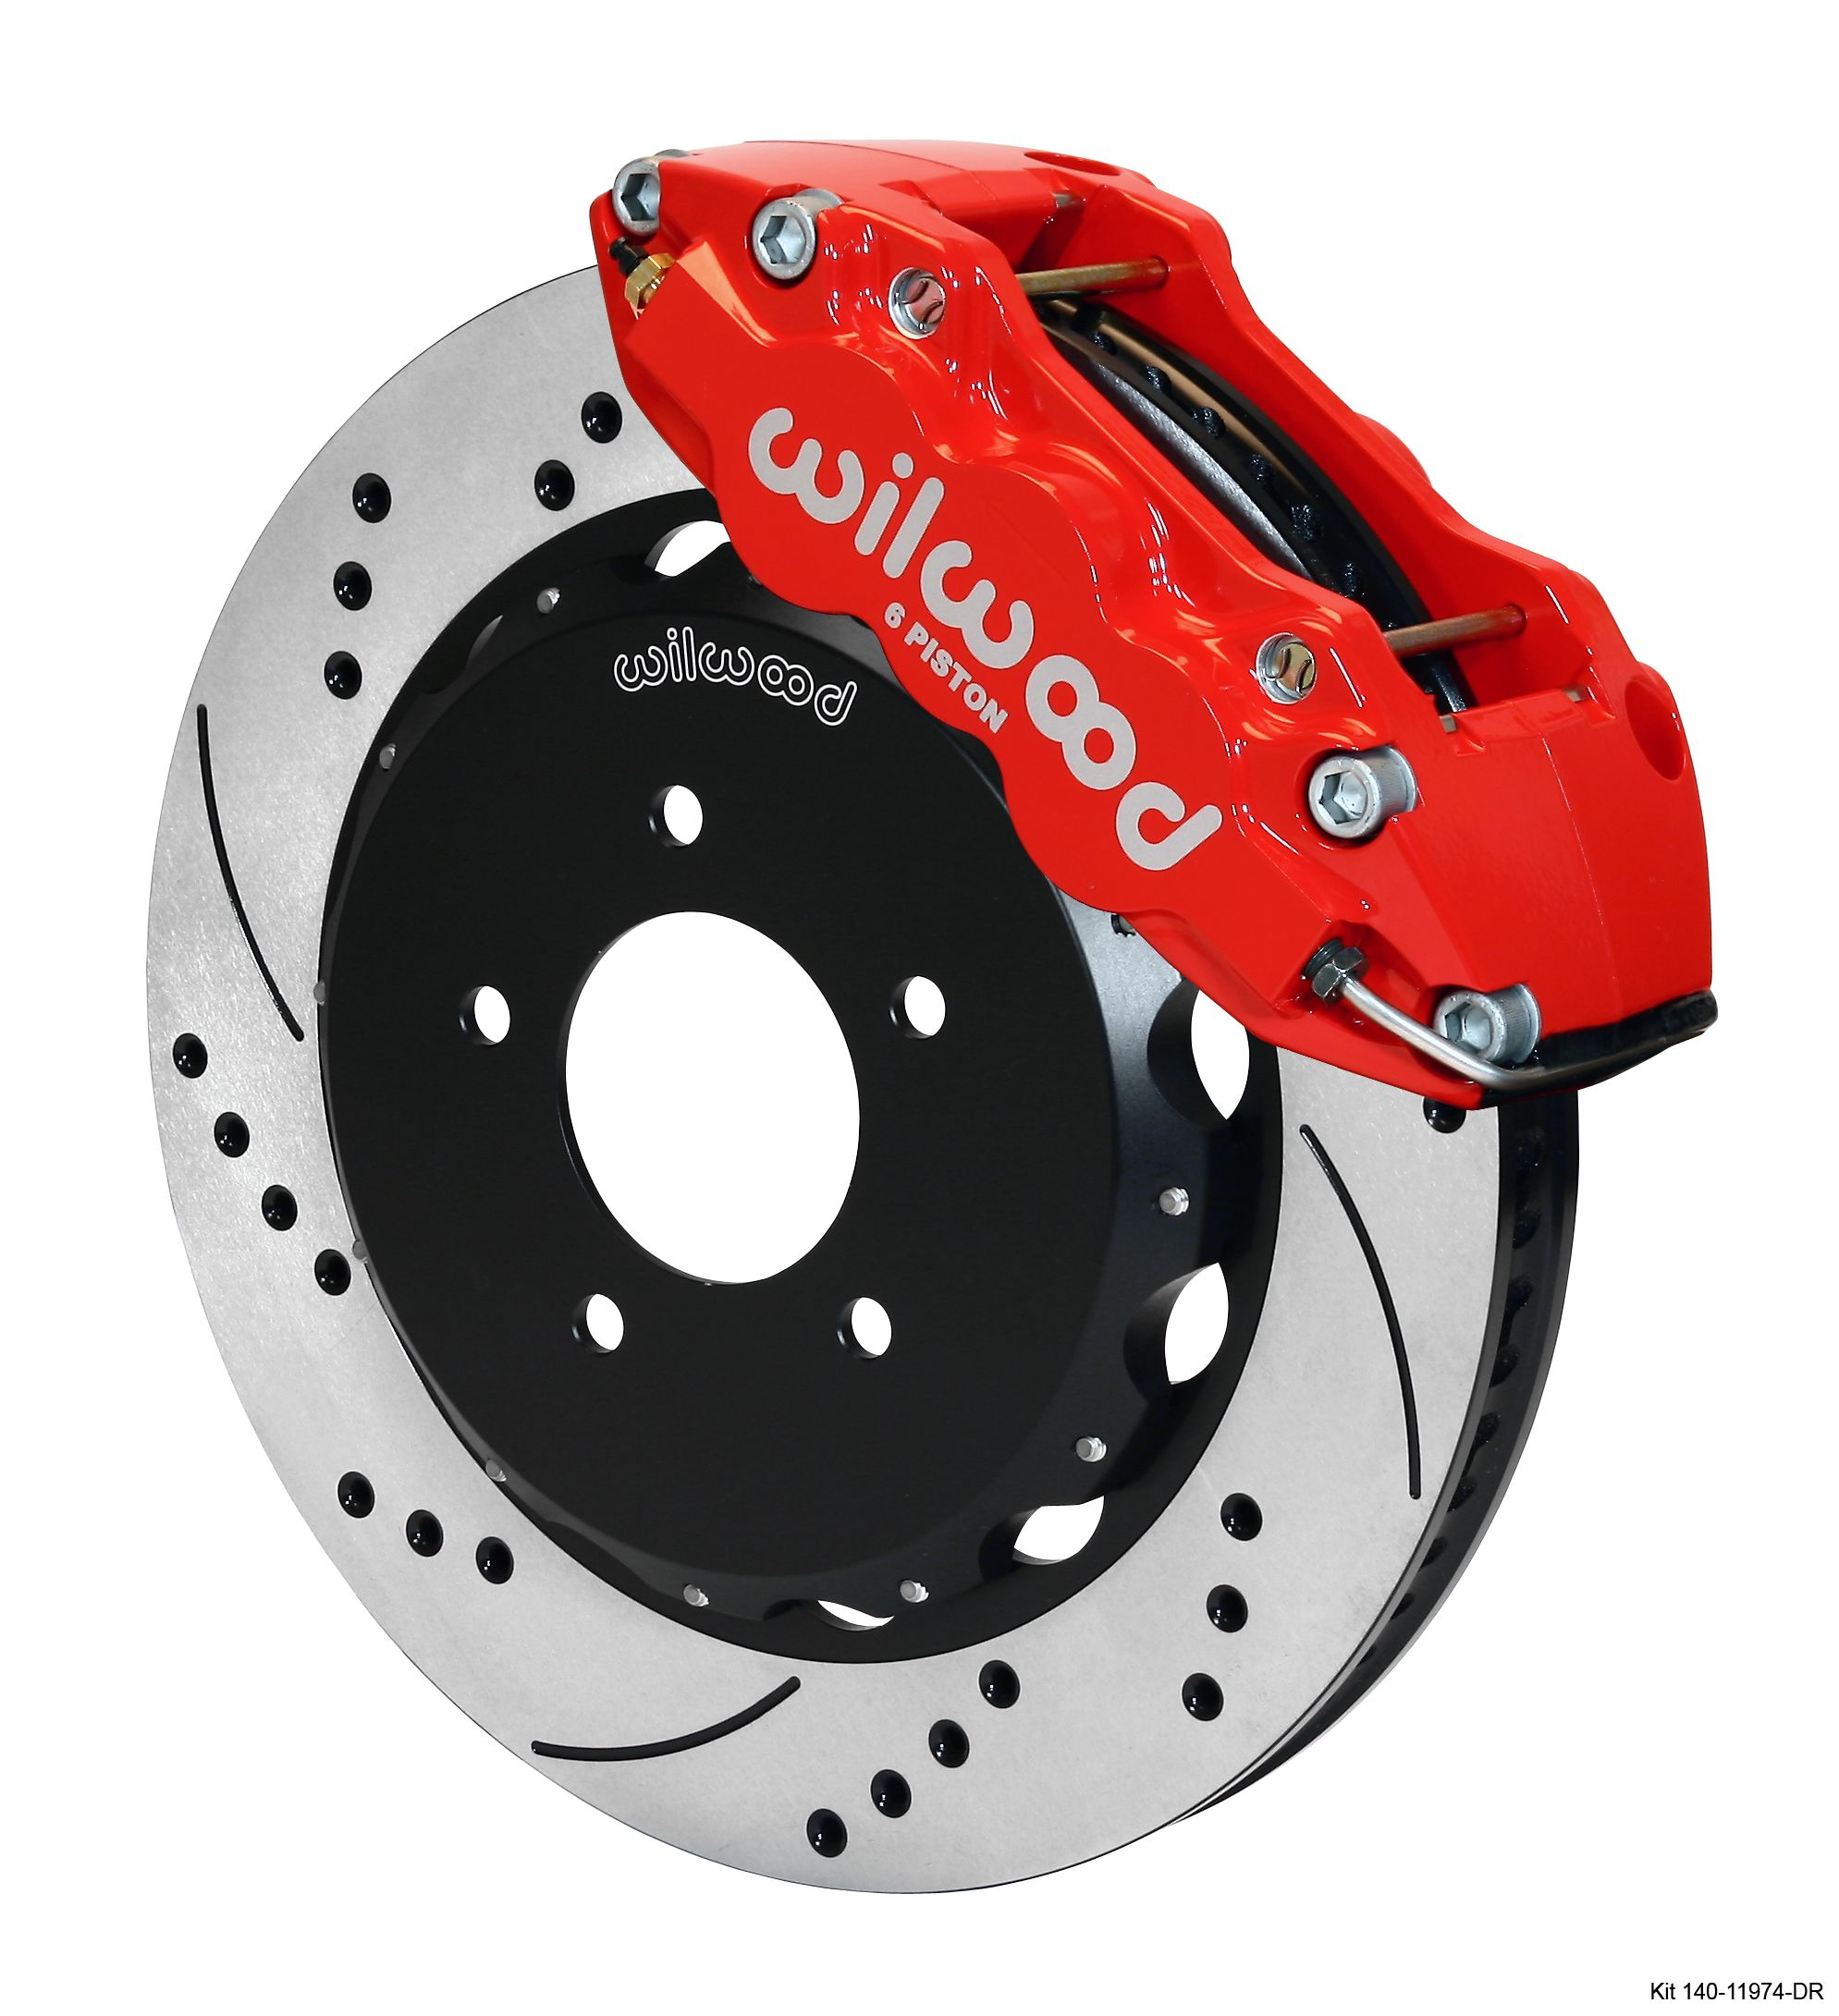 Wilwood's New Race Quality Disc Brake Kits for the BMW E46